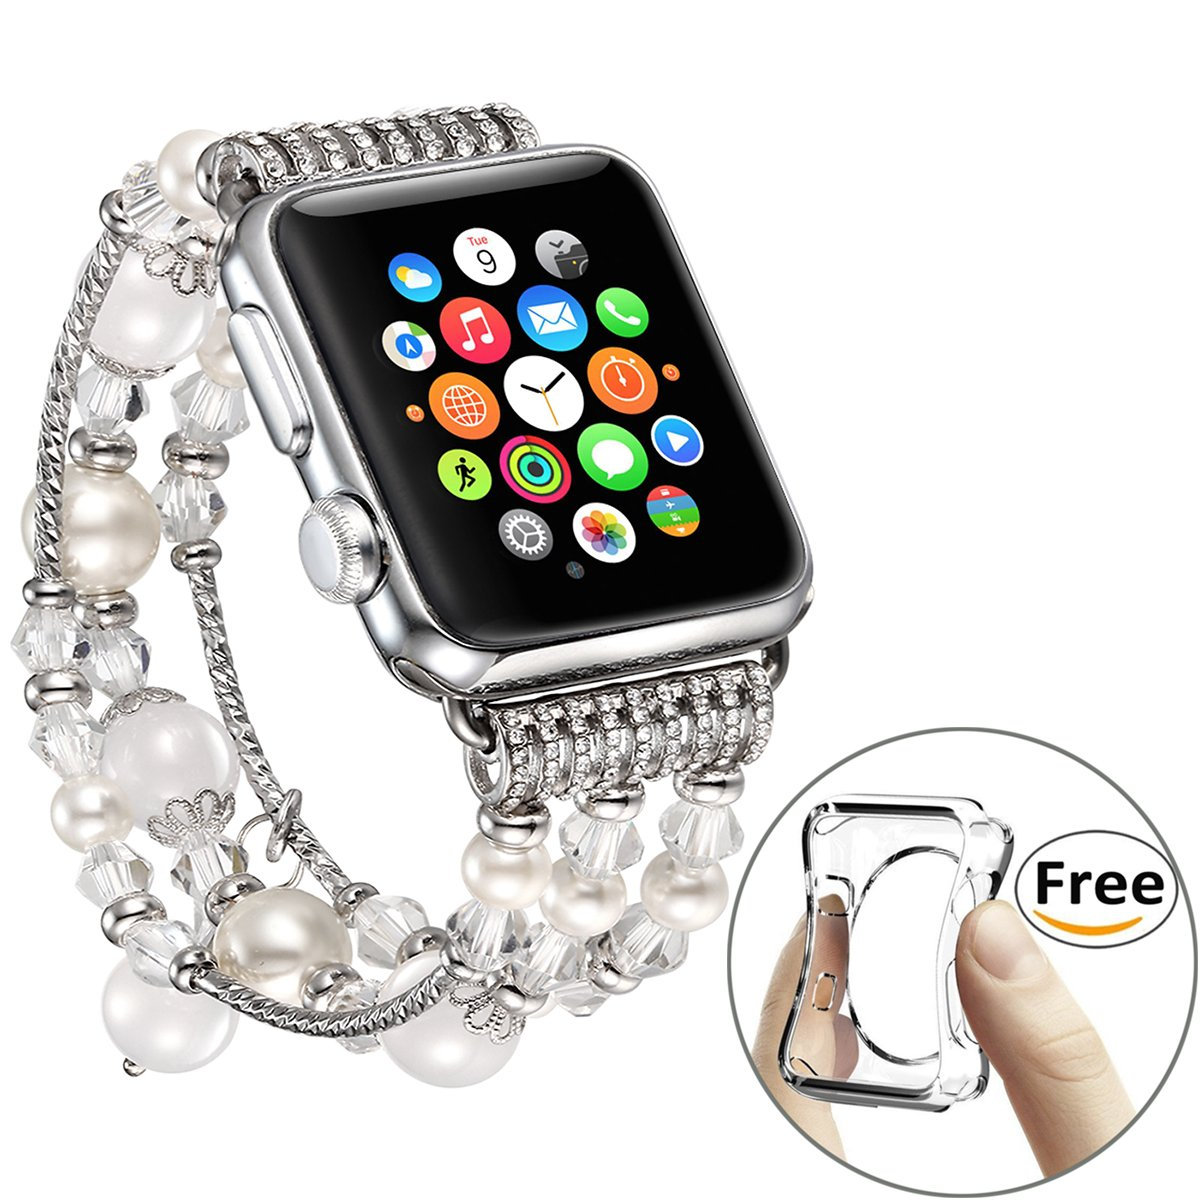 Fastgo for Band for Apple Watch 42mm, Bling White Beaded Faux Agate Bracelet Replacement iWatch Strap Women for Apple Watch Series 1 Series 2 Series 3 (White - 42mm)